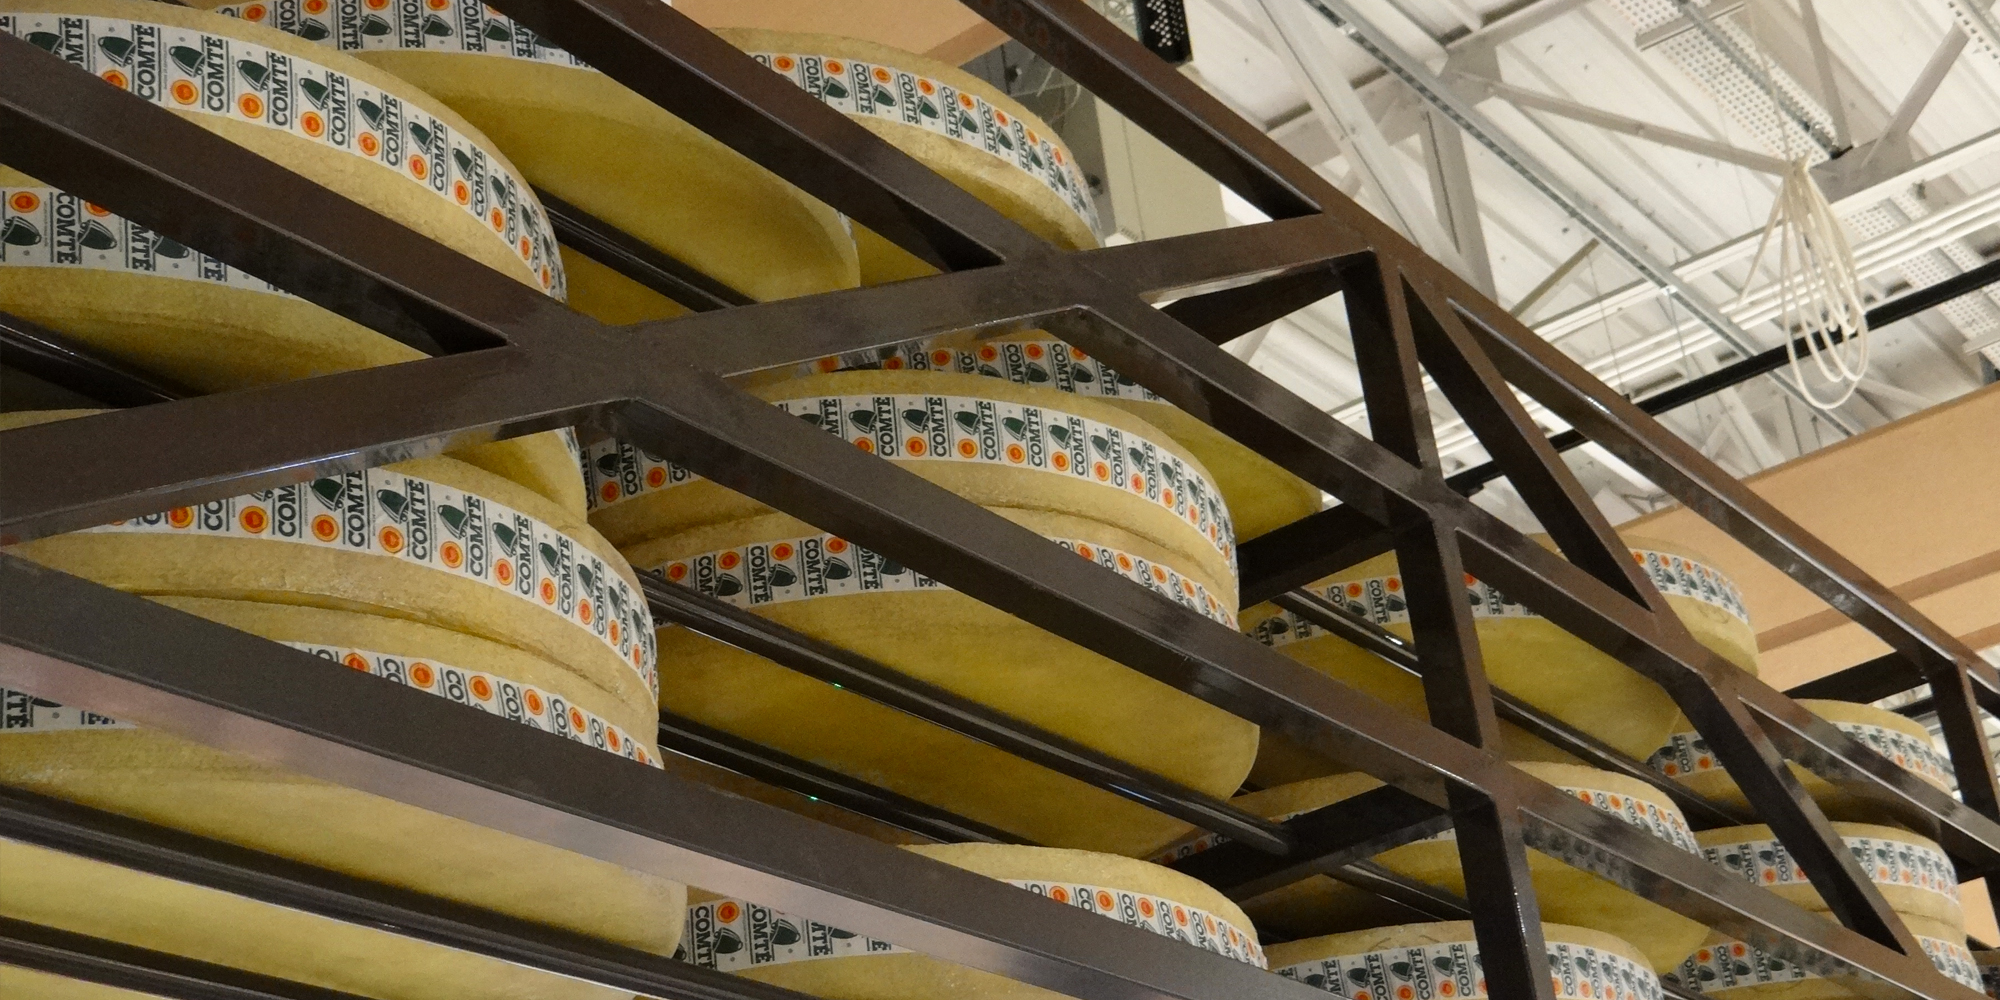 disposition des meules de comté factices en décor de GMS